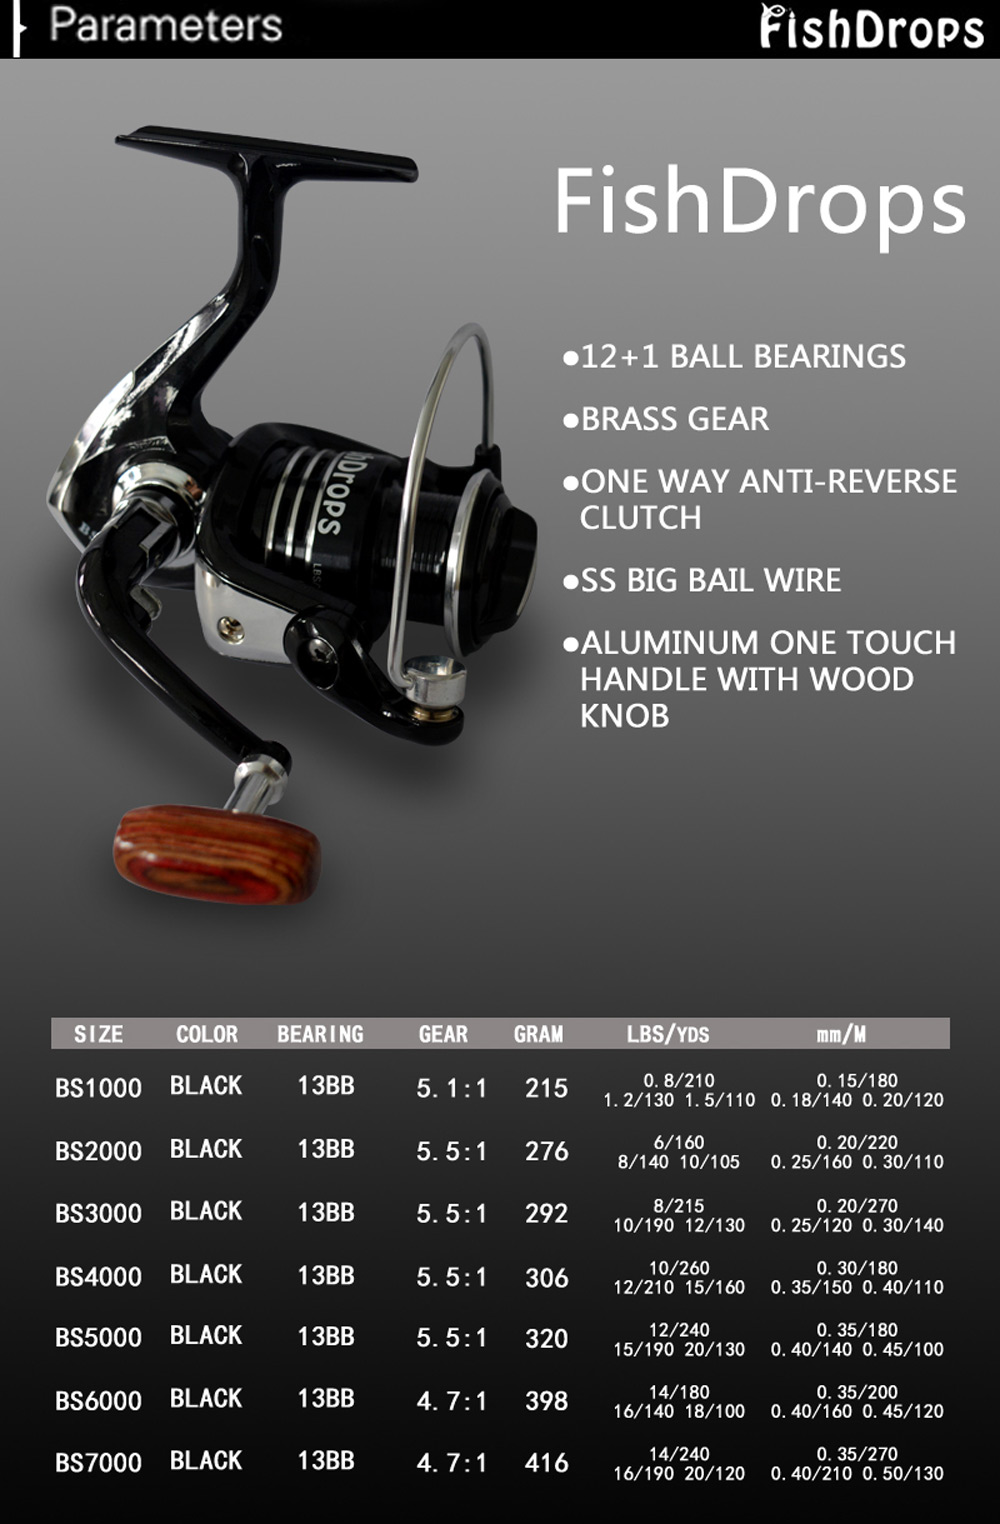 Fishdrops 13BB One Way Clutch Size 1000 - 7000 Full Metal Spool Spinning Carp Fishing Reel